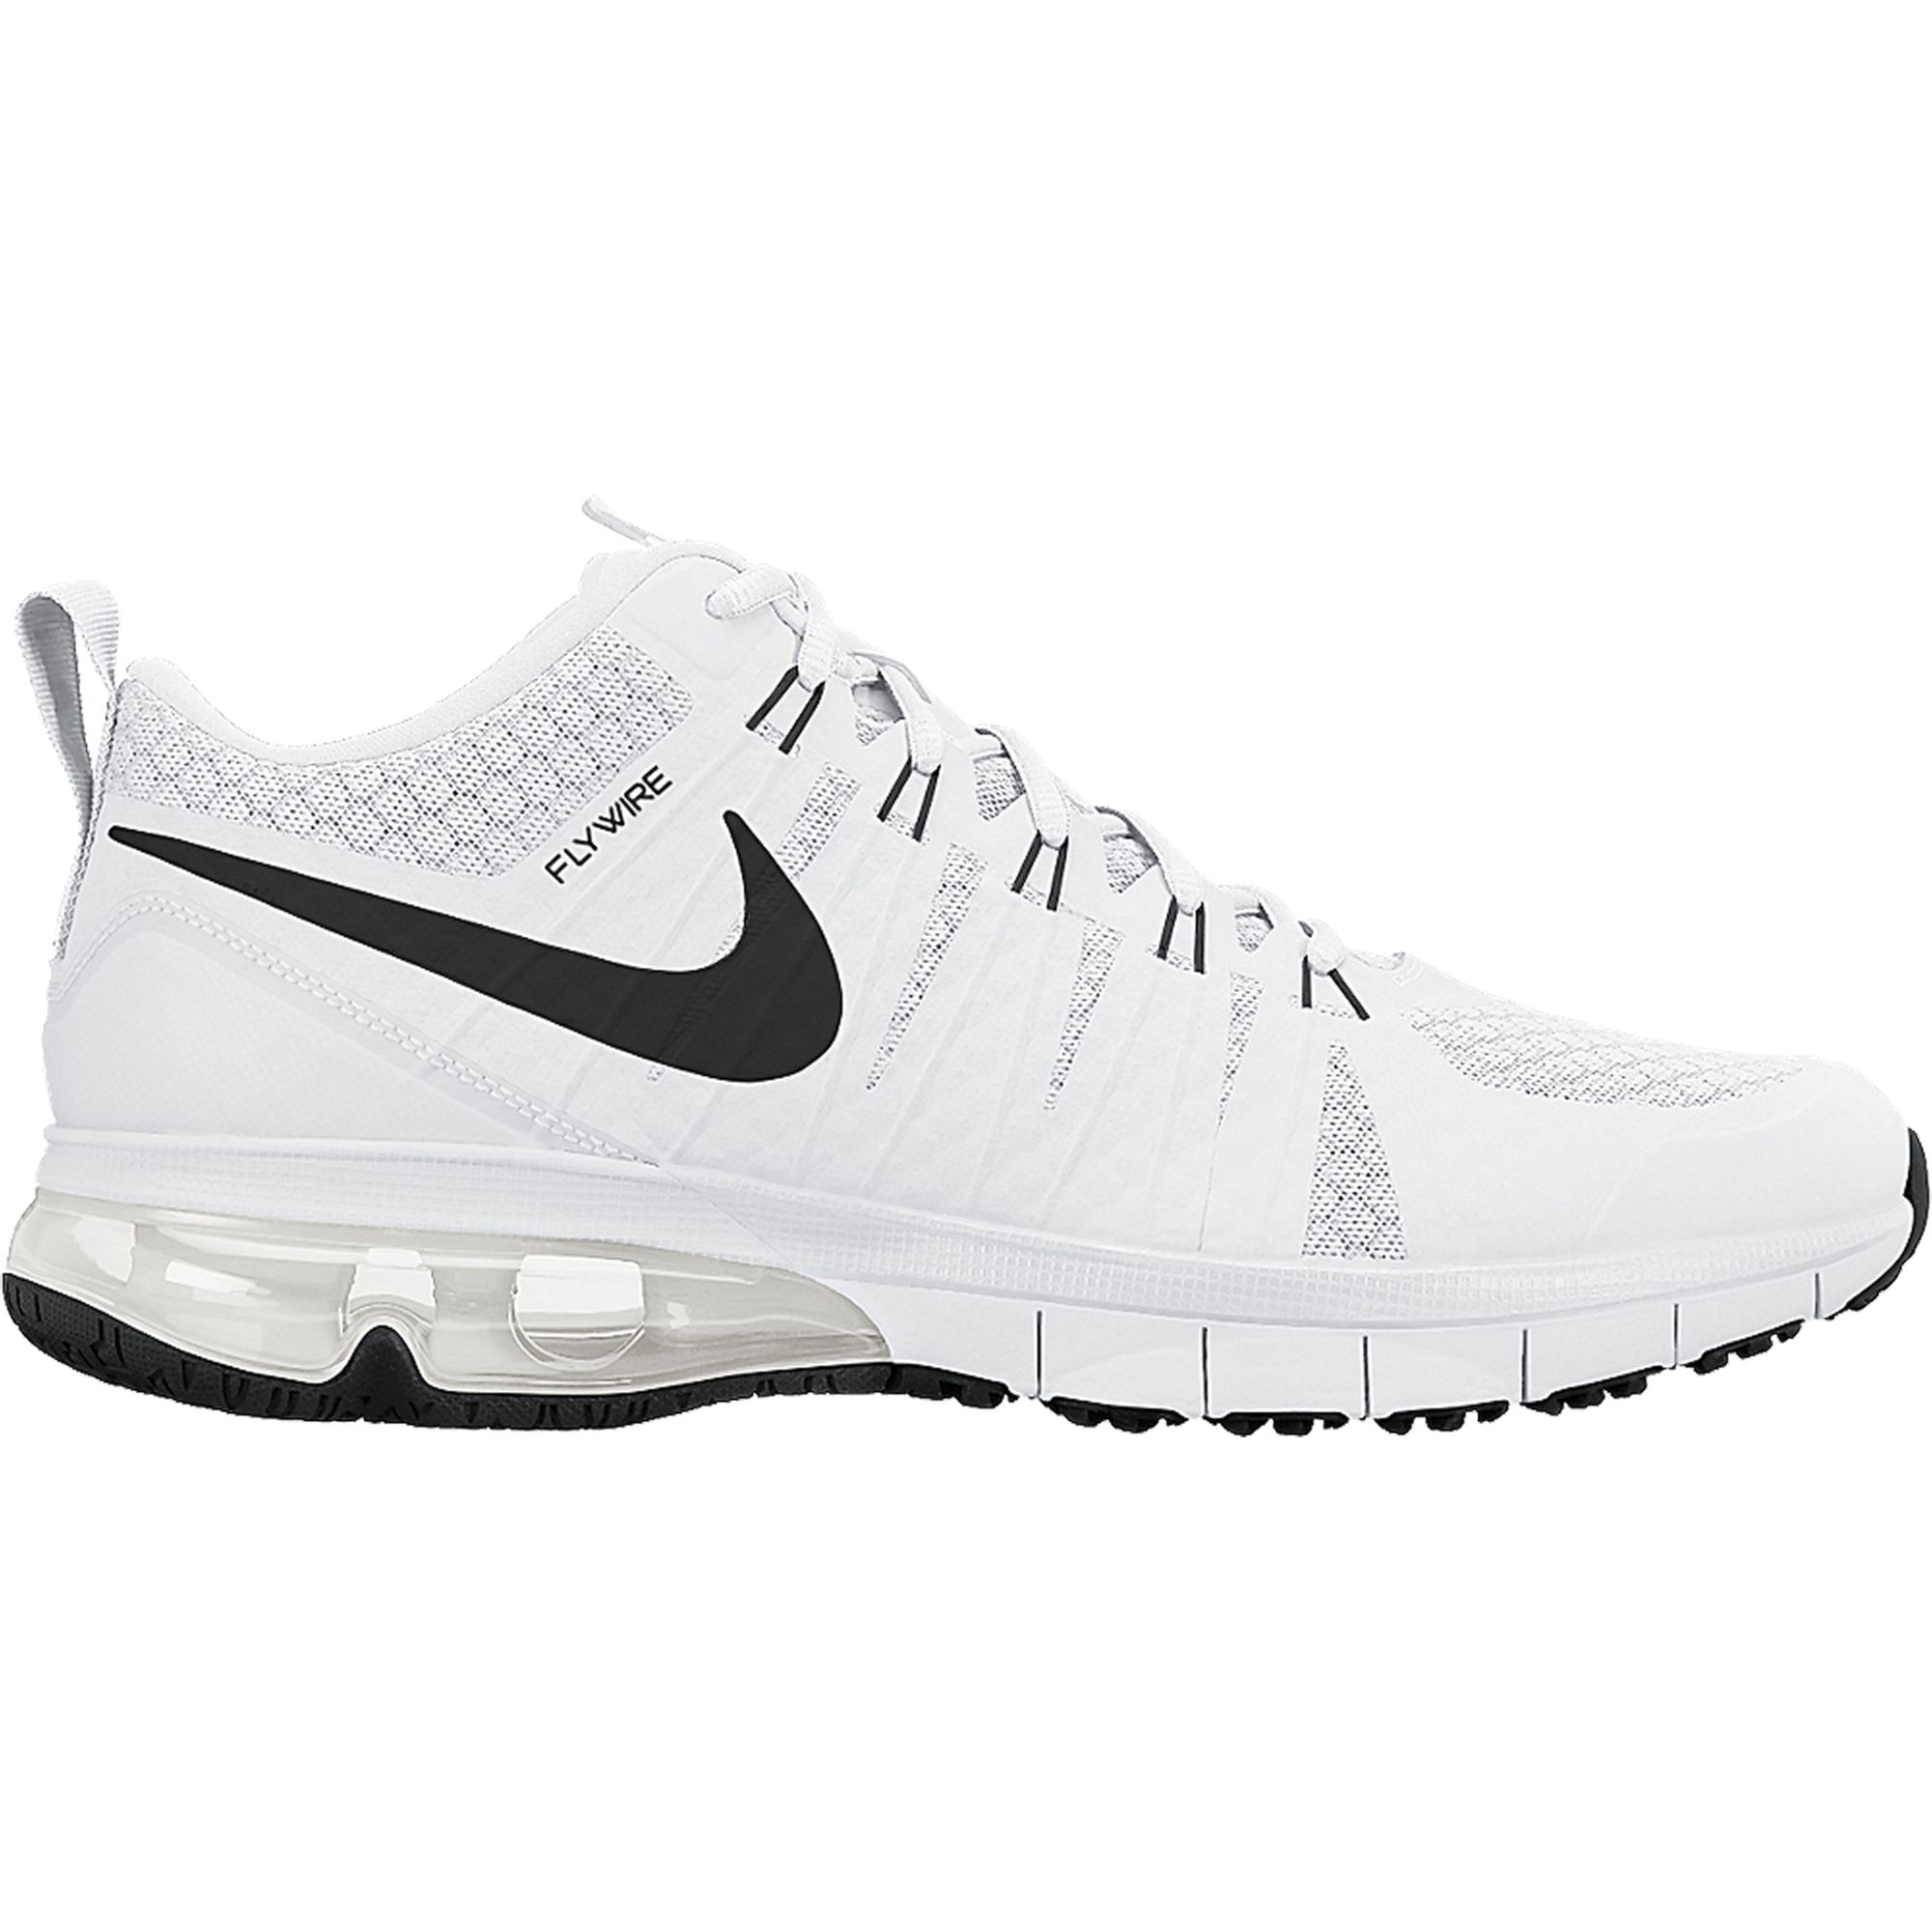 new style b9c0d 049c3 Men s Nike Air Max TR180 Training Shoe - Sieverts Sporting Goods